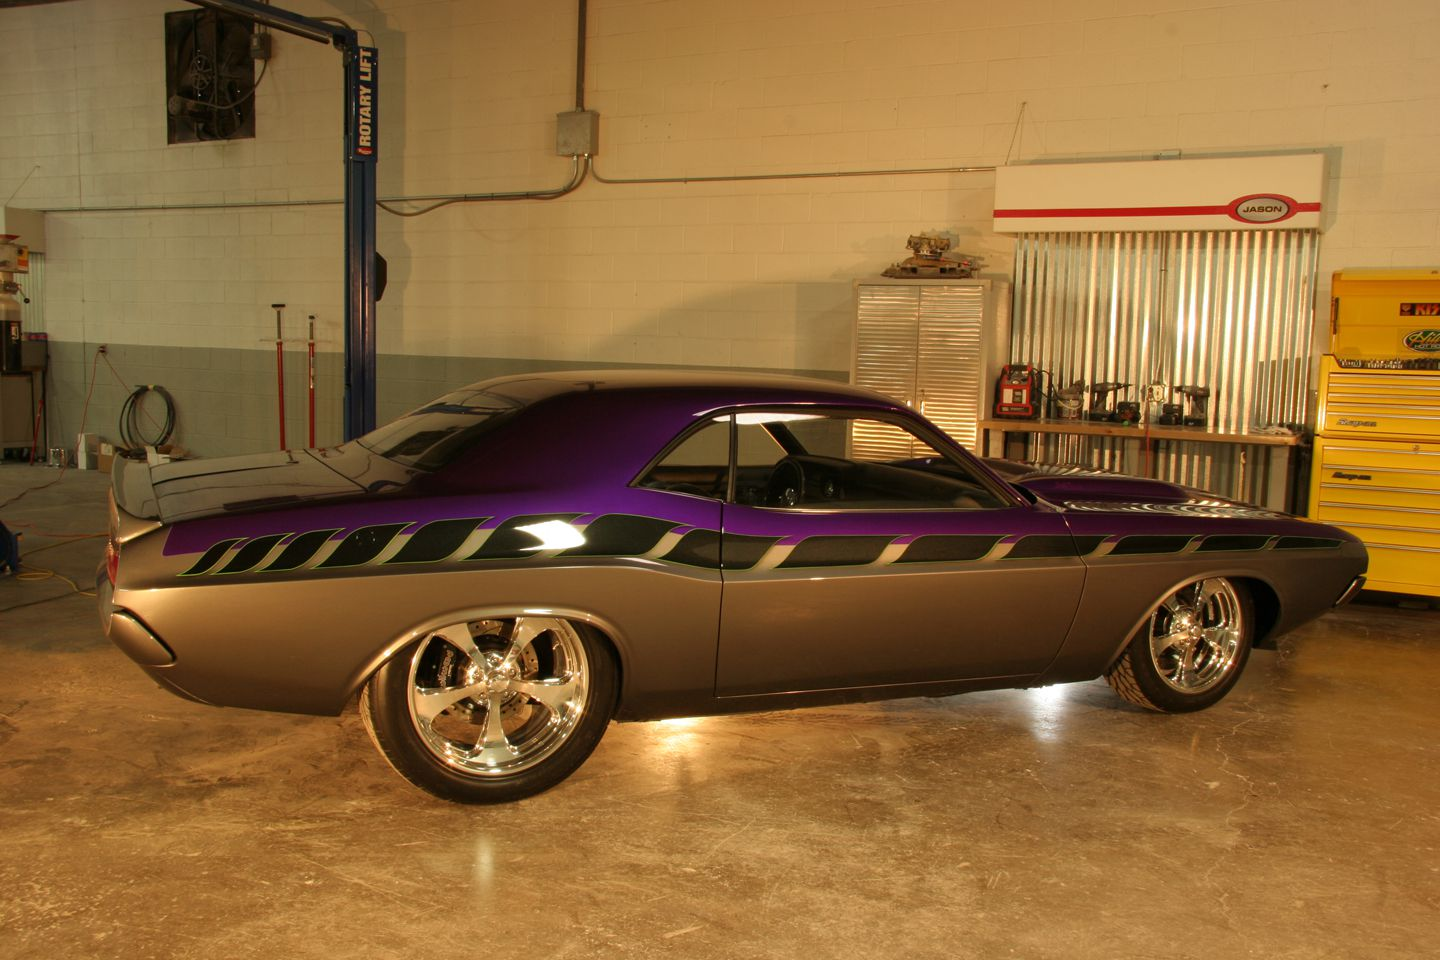 Hill\'s Hot Rods Builds a Game-Changing Mopar